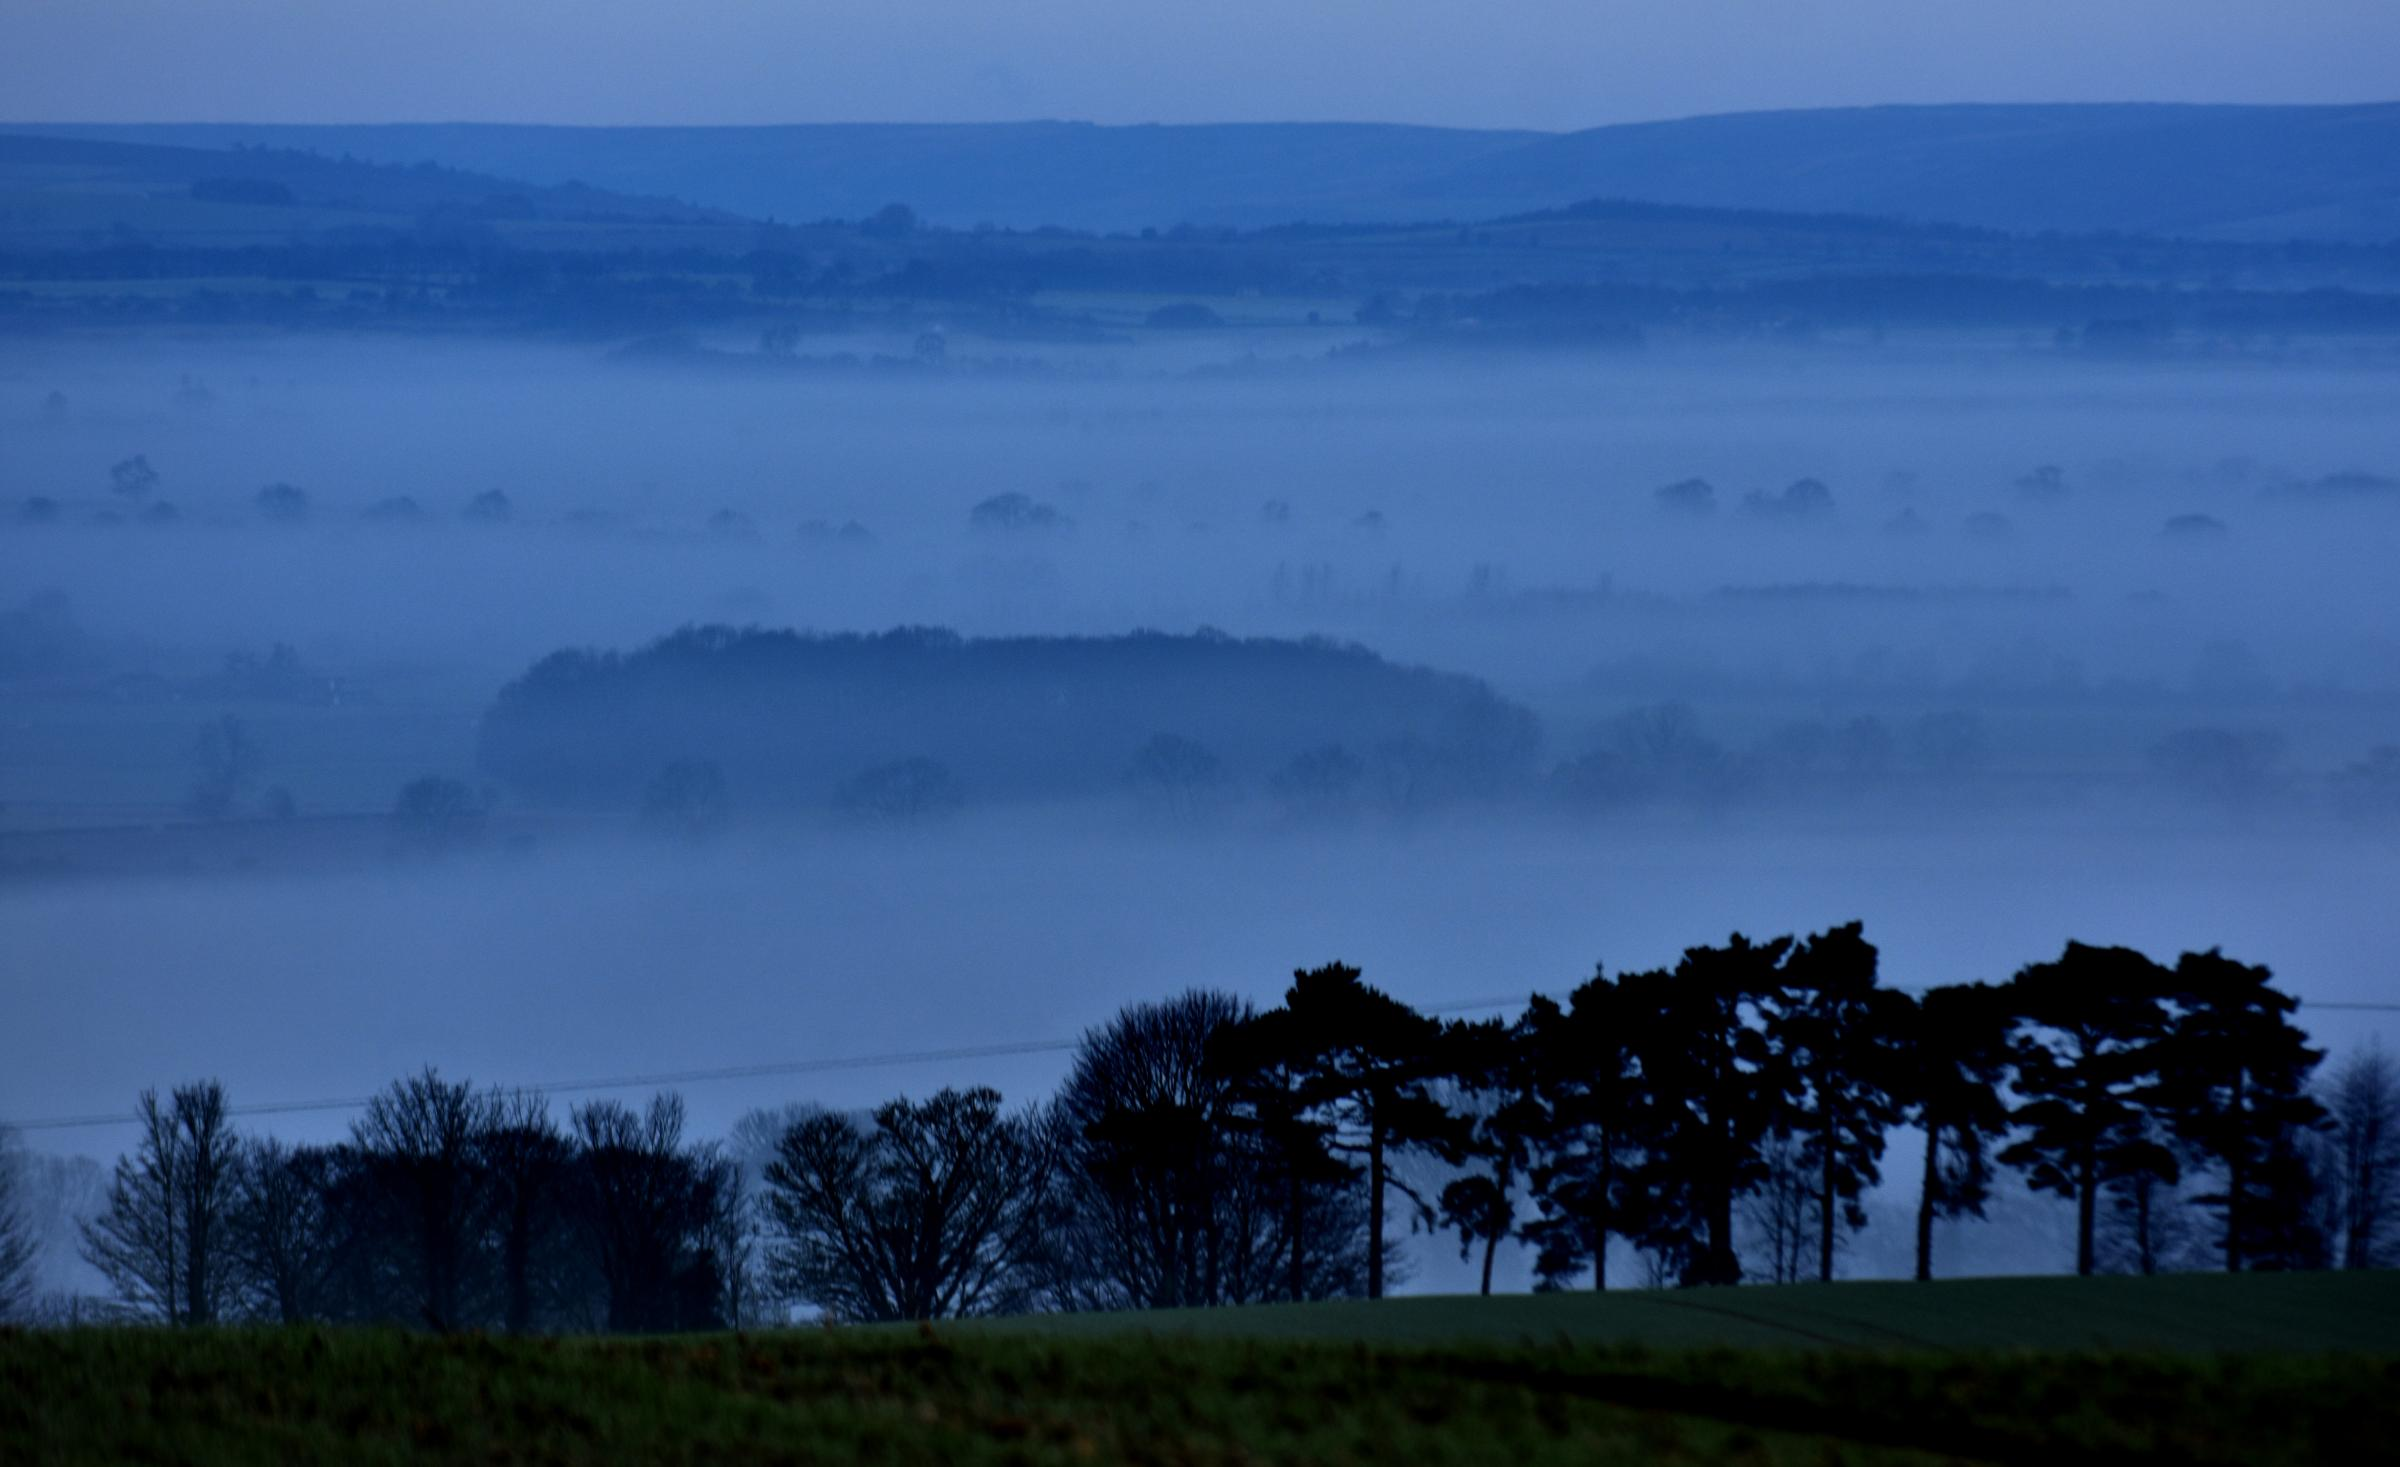 A foggy Nunnington by Frank Dwyer